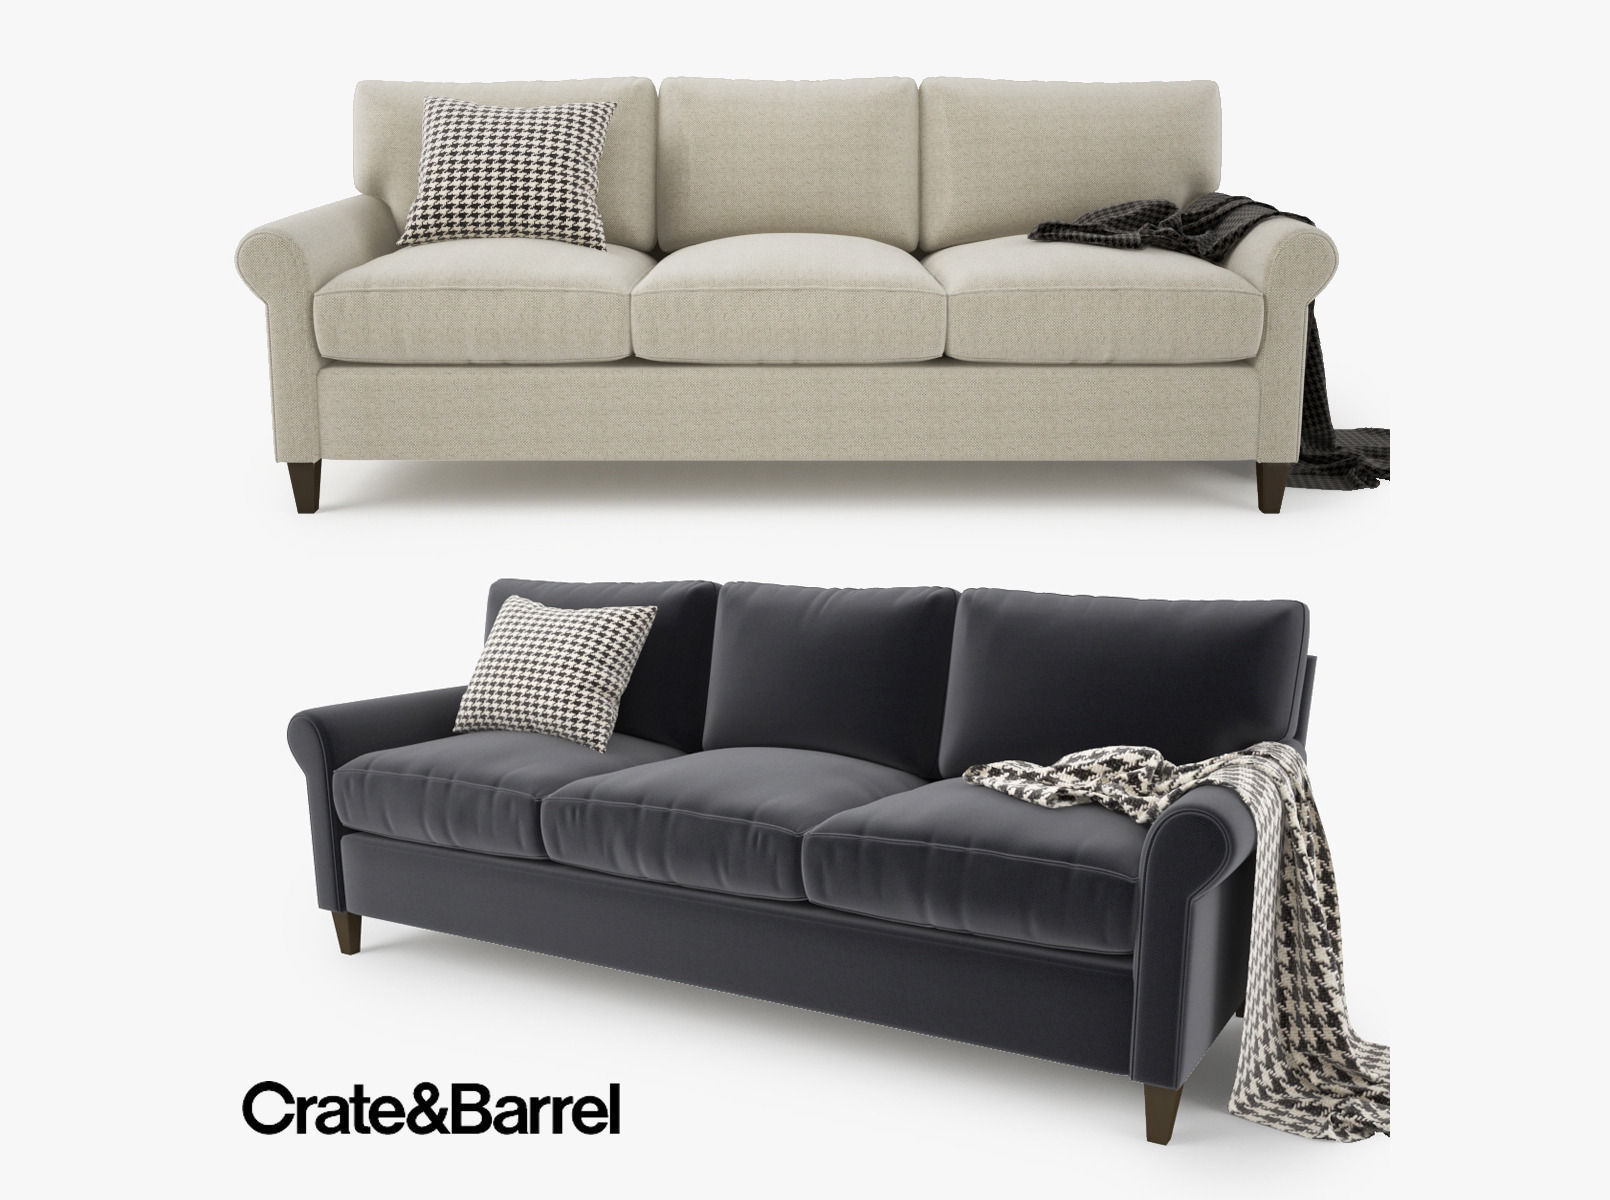 crate and barrel sofas davis down blend sofa crate and barrel thesofa. Black Bedroom Furniture Sets. Home Design Ideas